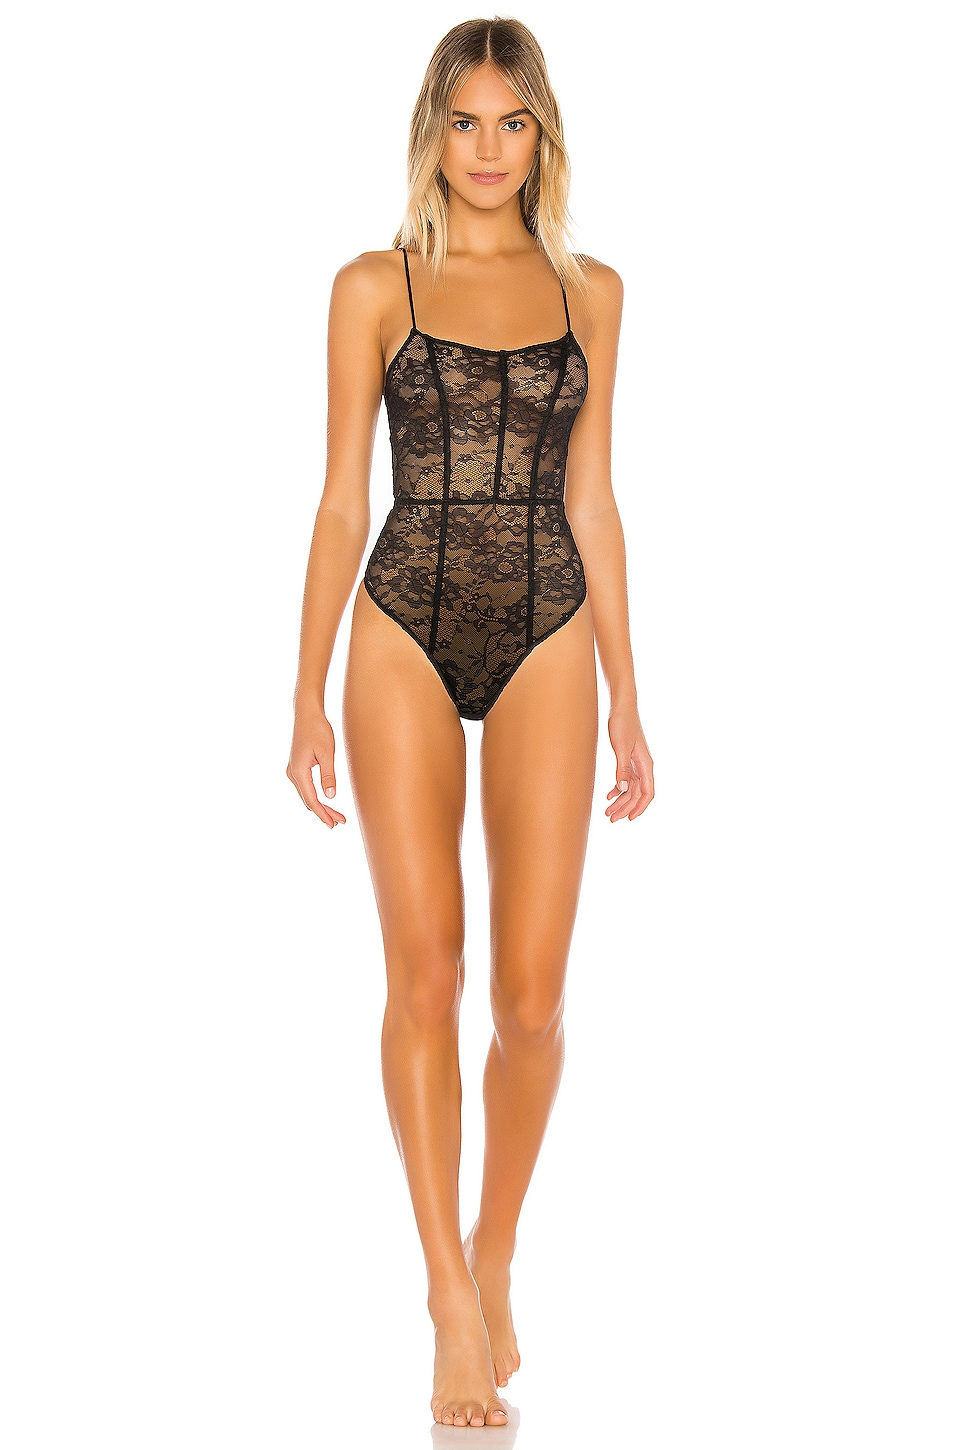 h:ours Arlo Bodysuit in Black